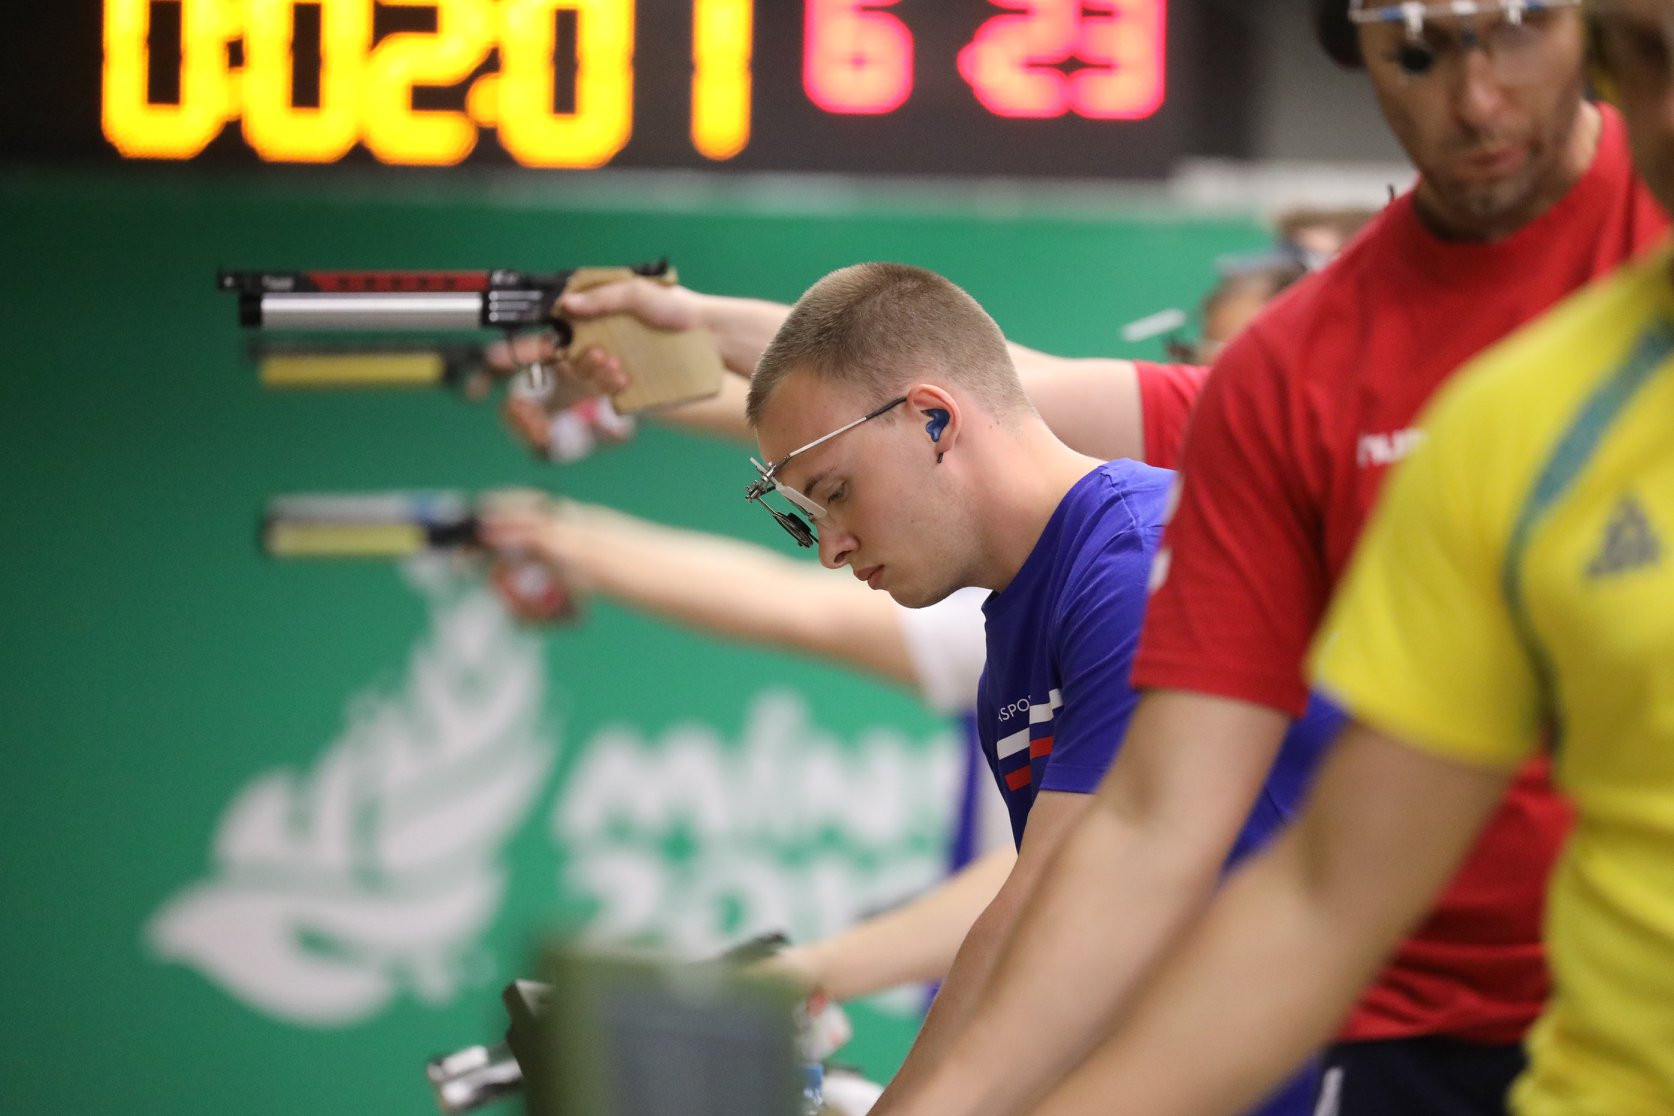 Russia's Artem Chernousov won shooting gold to become the first medallist of Minsk 2019's third day of action ©Minsk 2019